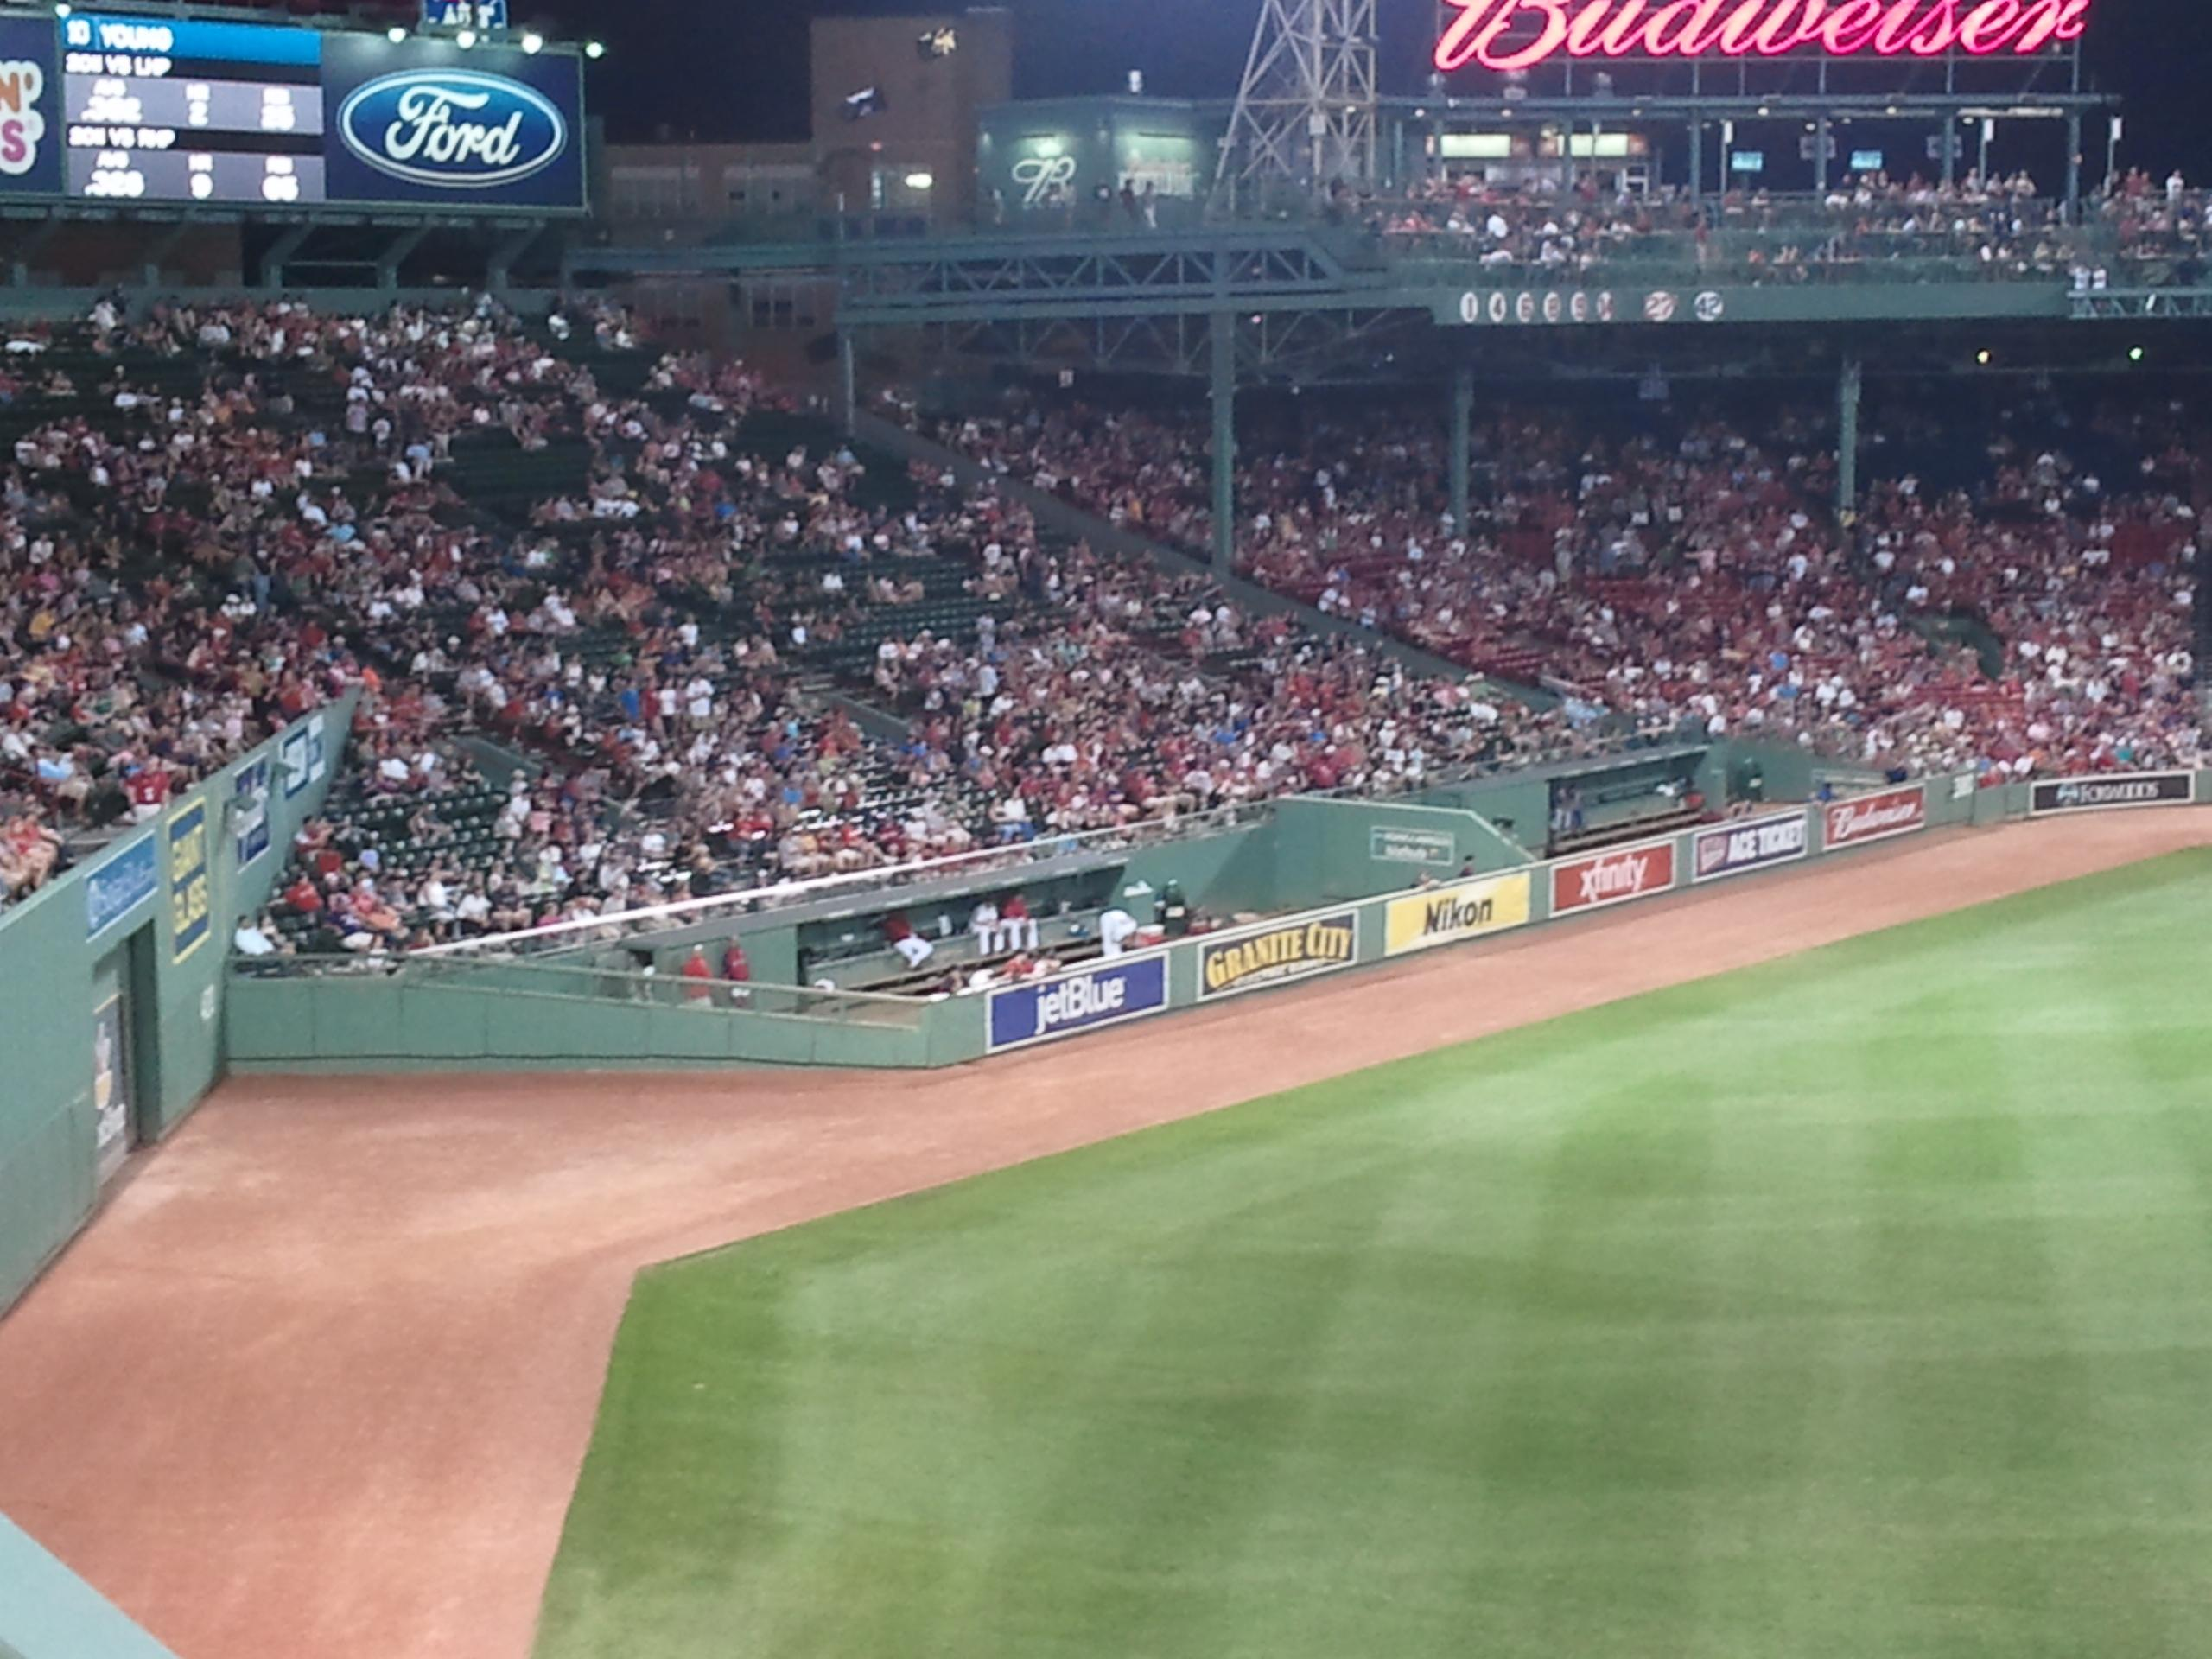 Fenway Park Section Green Monster 6 Row 2 Seat 6